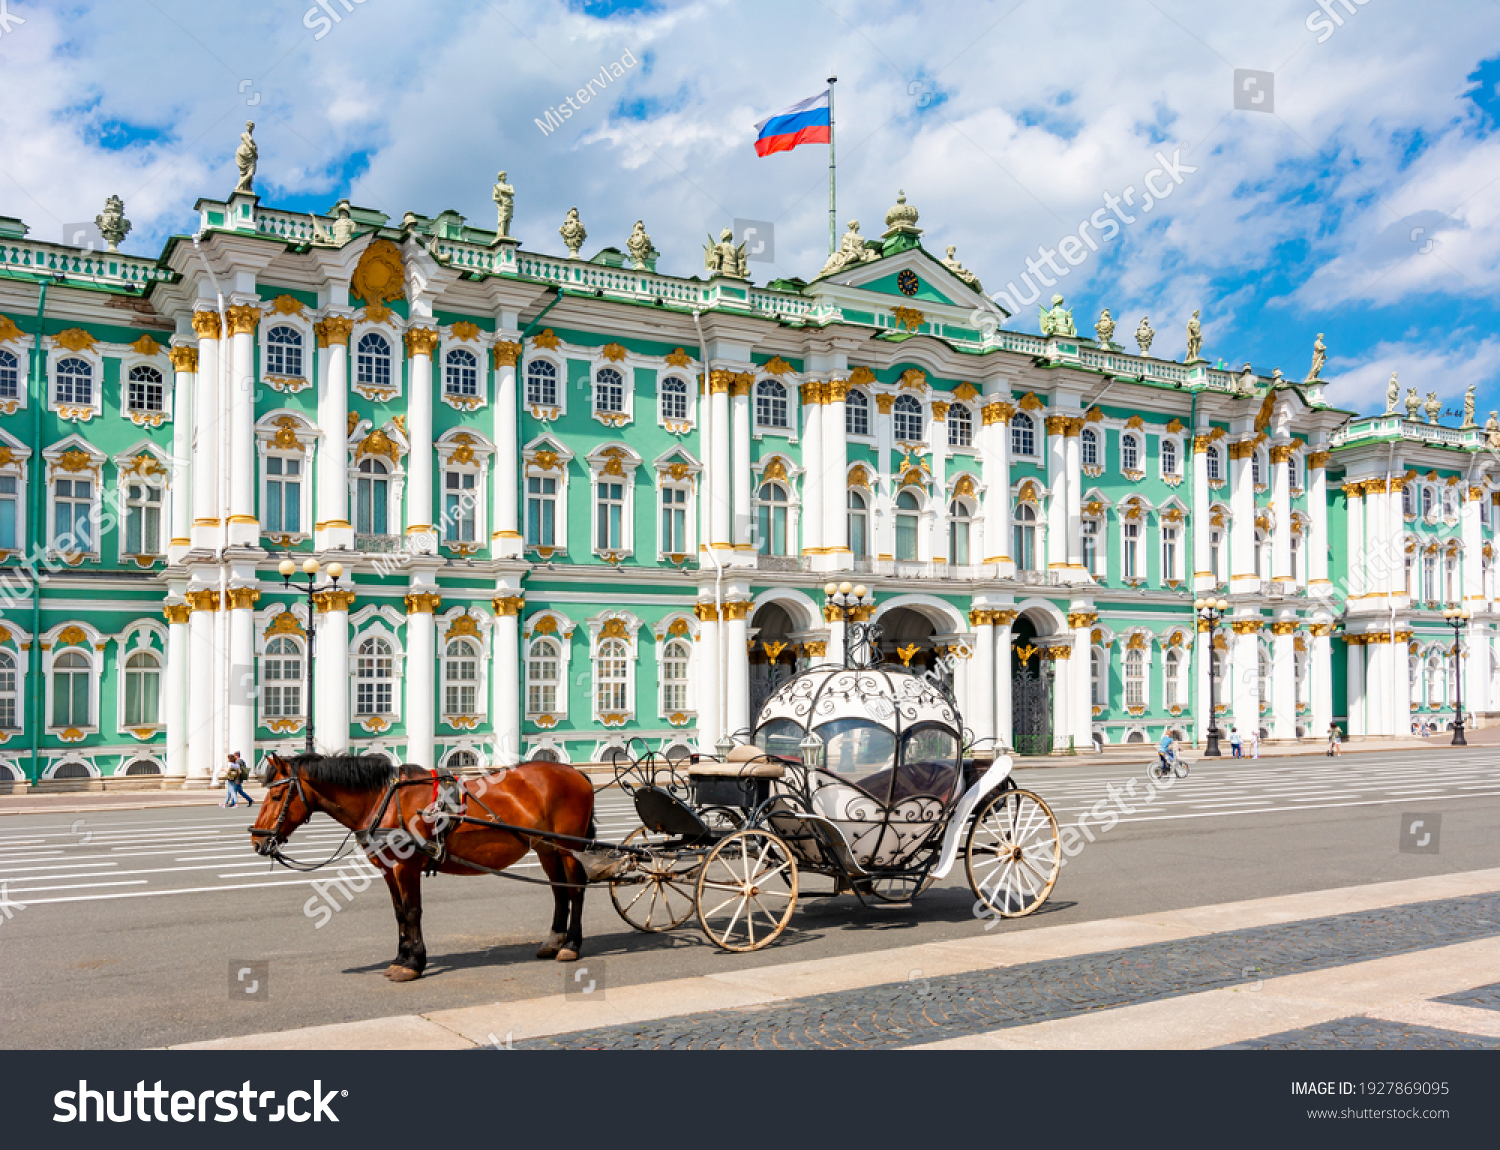 Horse carriage on Palace square and Hermitage museum at background, St. Petersburg, Russia #1927869095